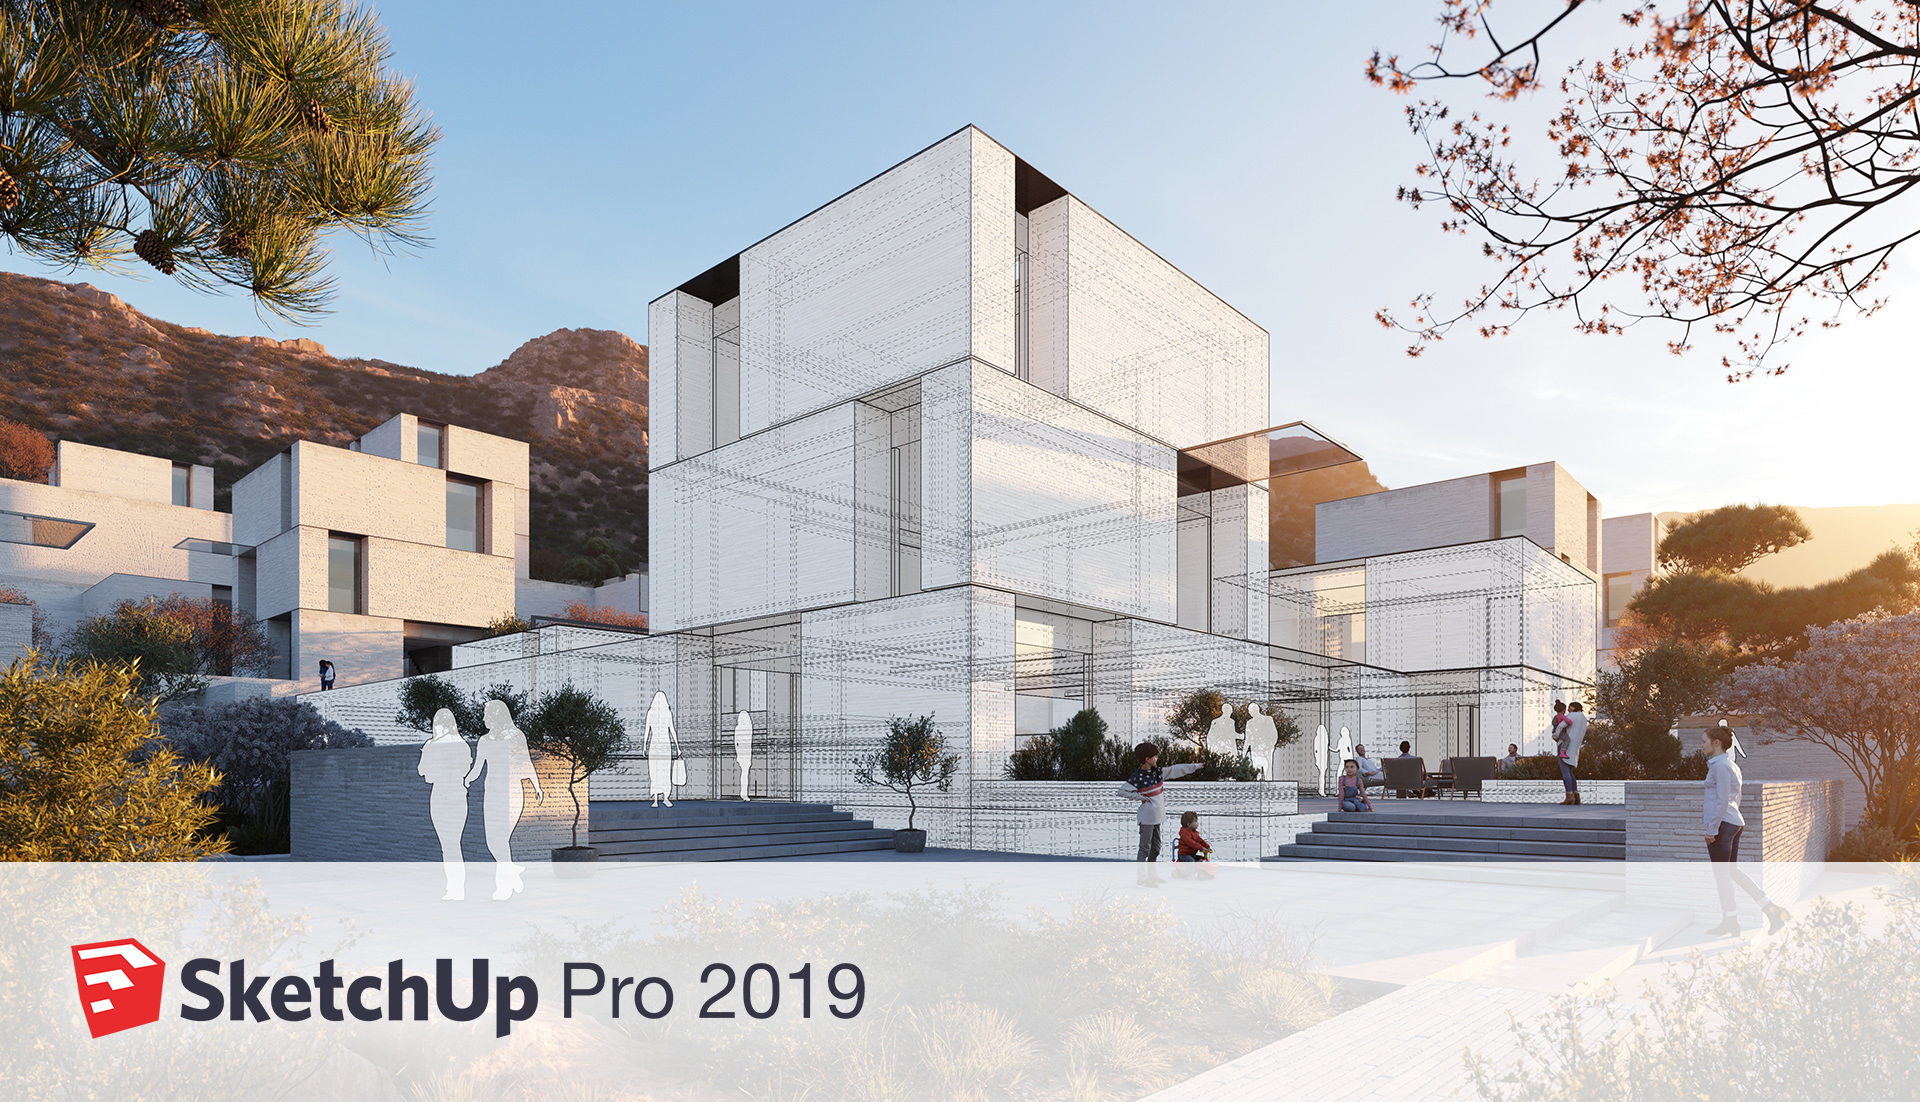 The NEW SketchUp Pro 2019 has landed - and here is what's new